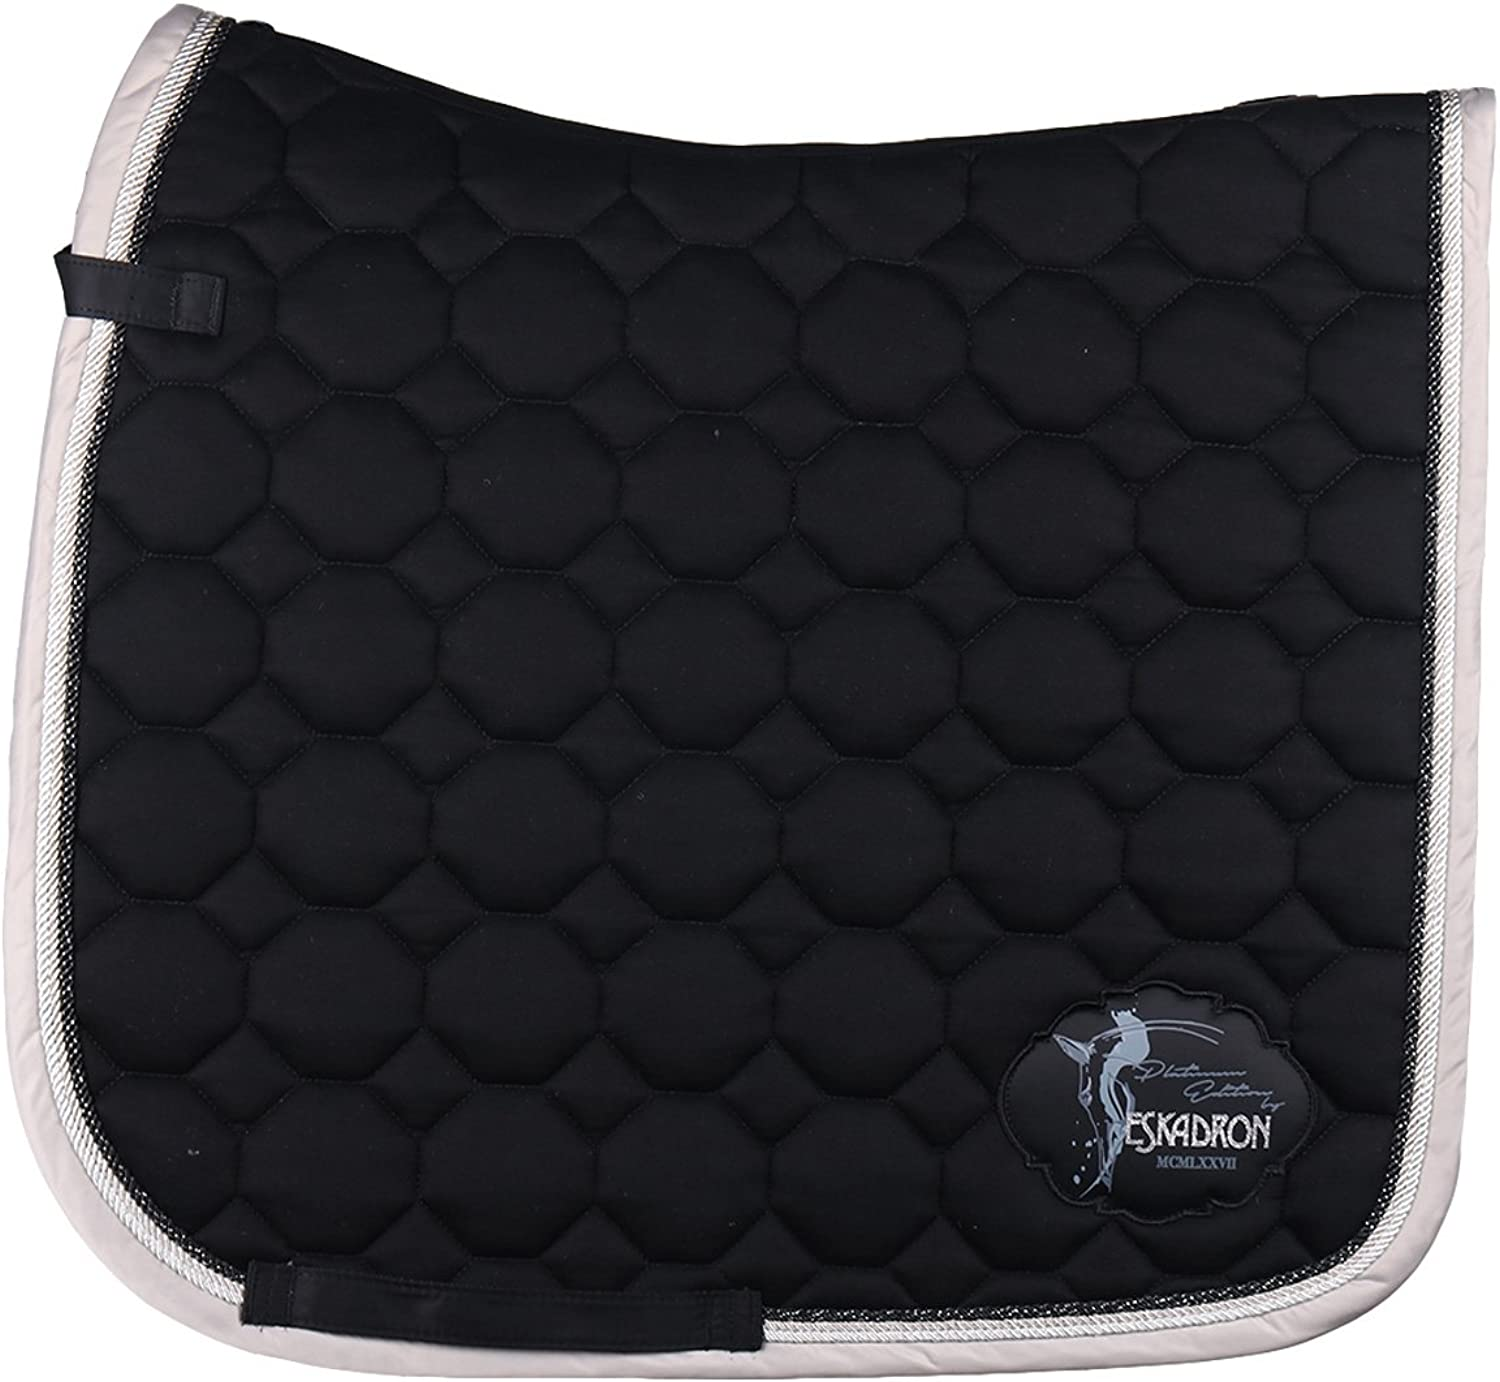 Eskadron Cotton Emblem Saddle Pad General Purpose Black